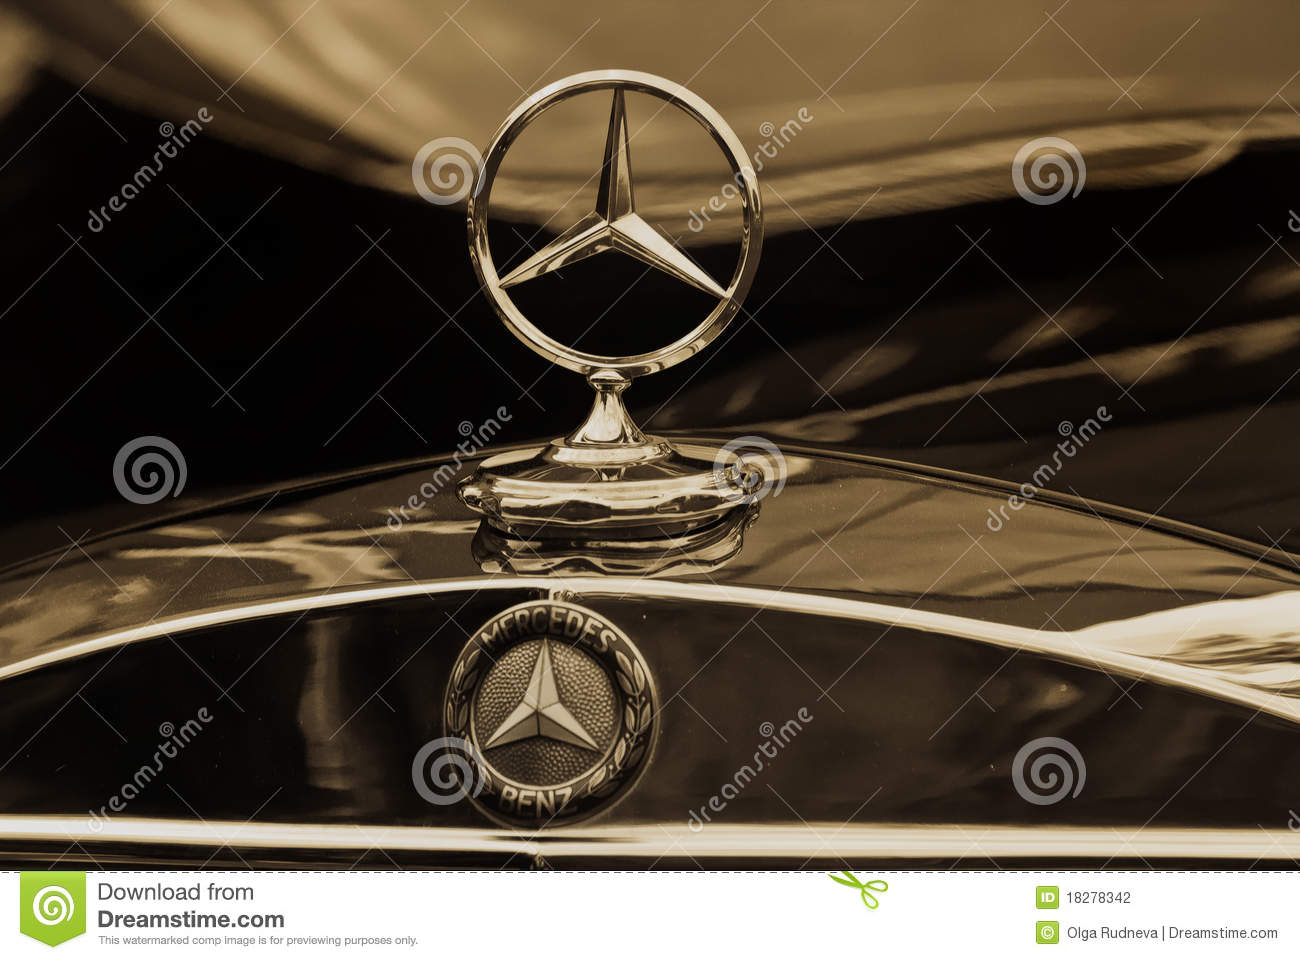 Mercedes benz emblem sepia editorial photography image for Mercedes benz insignia